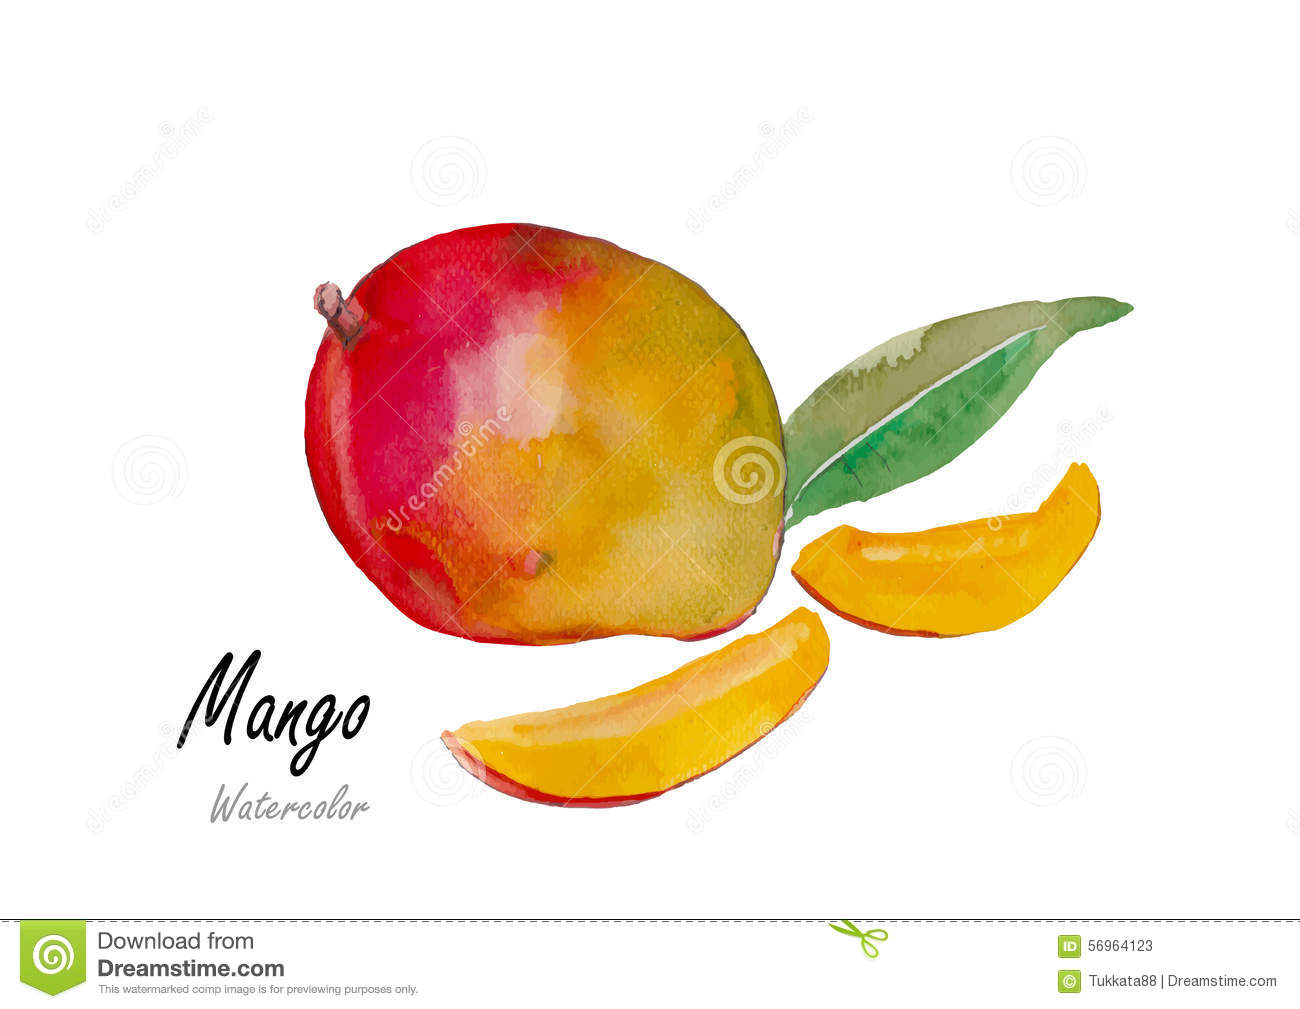 how to draw a real mango